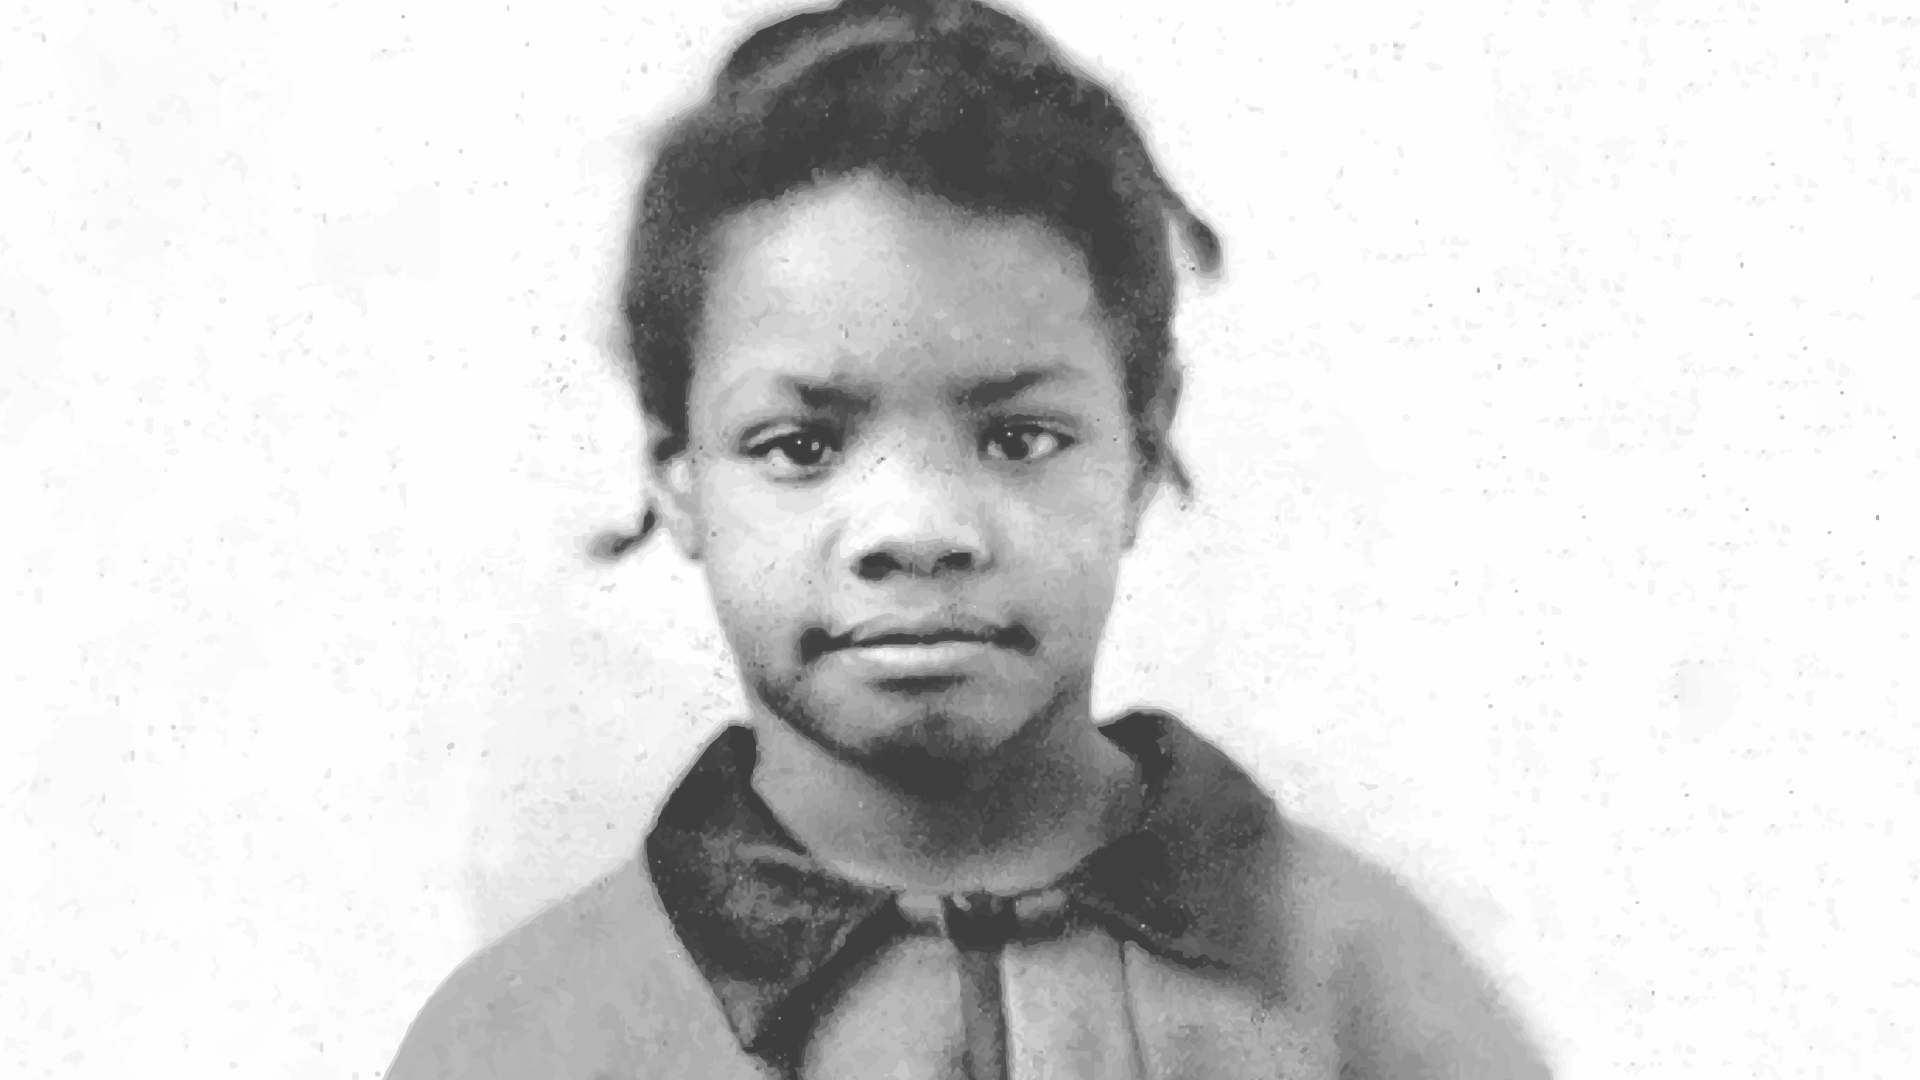 Maya Angelou as a young child. She was sent from home to home for most of her traumatic childhood.